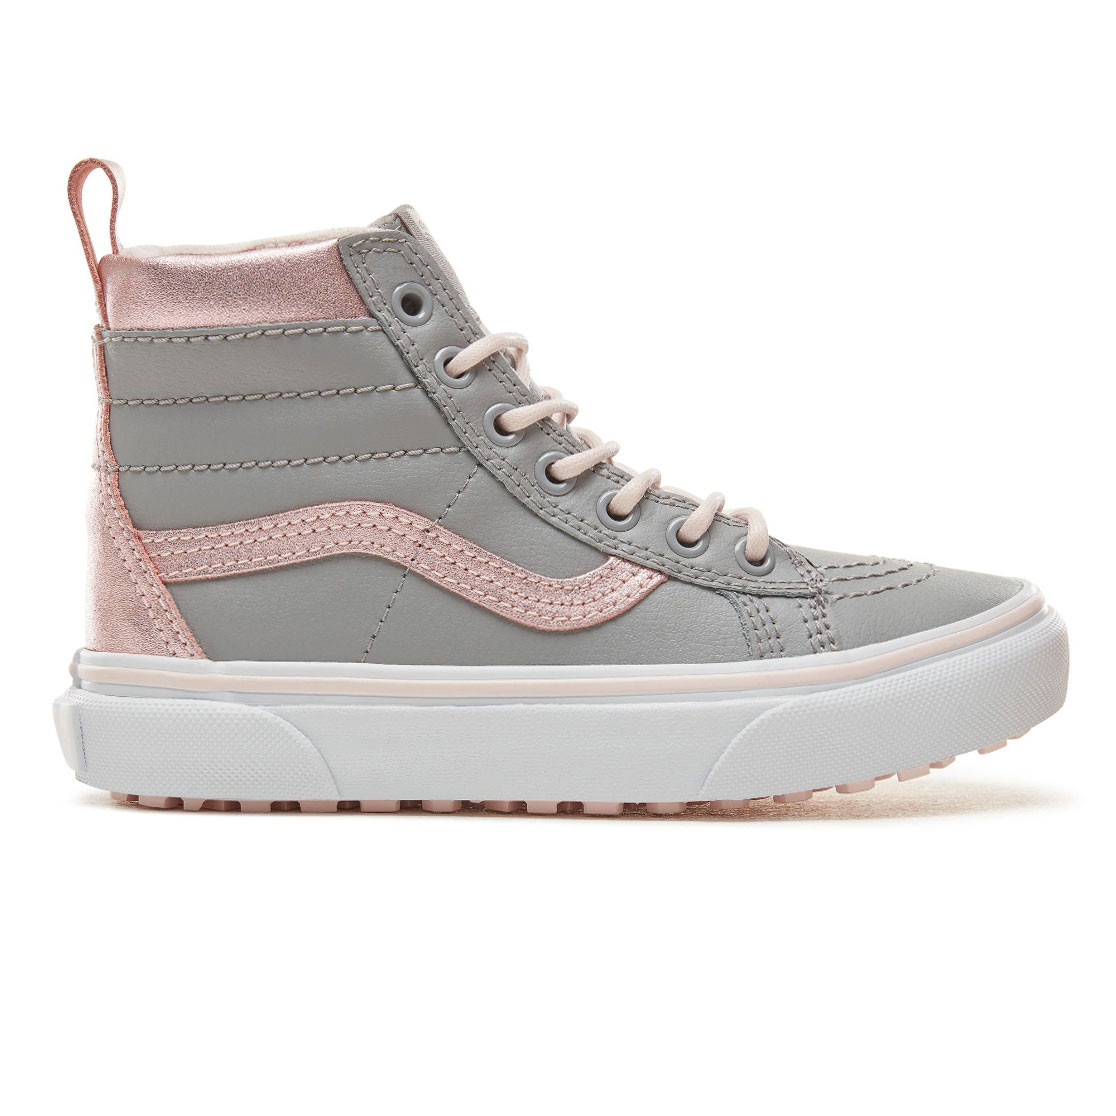 9be38b4485 Skate shoes Vans Sk8-Hi Mte metallic alloy heavenly pink